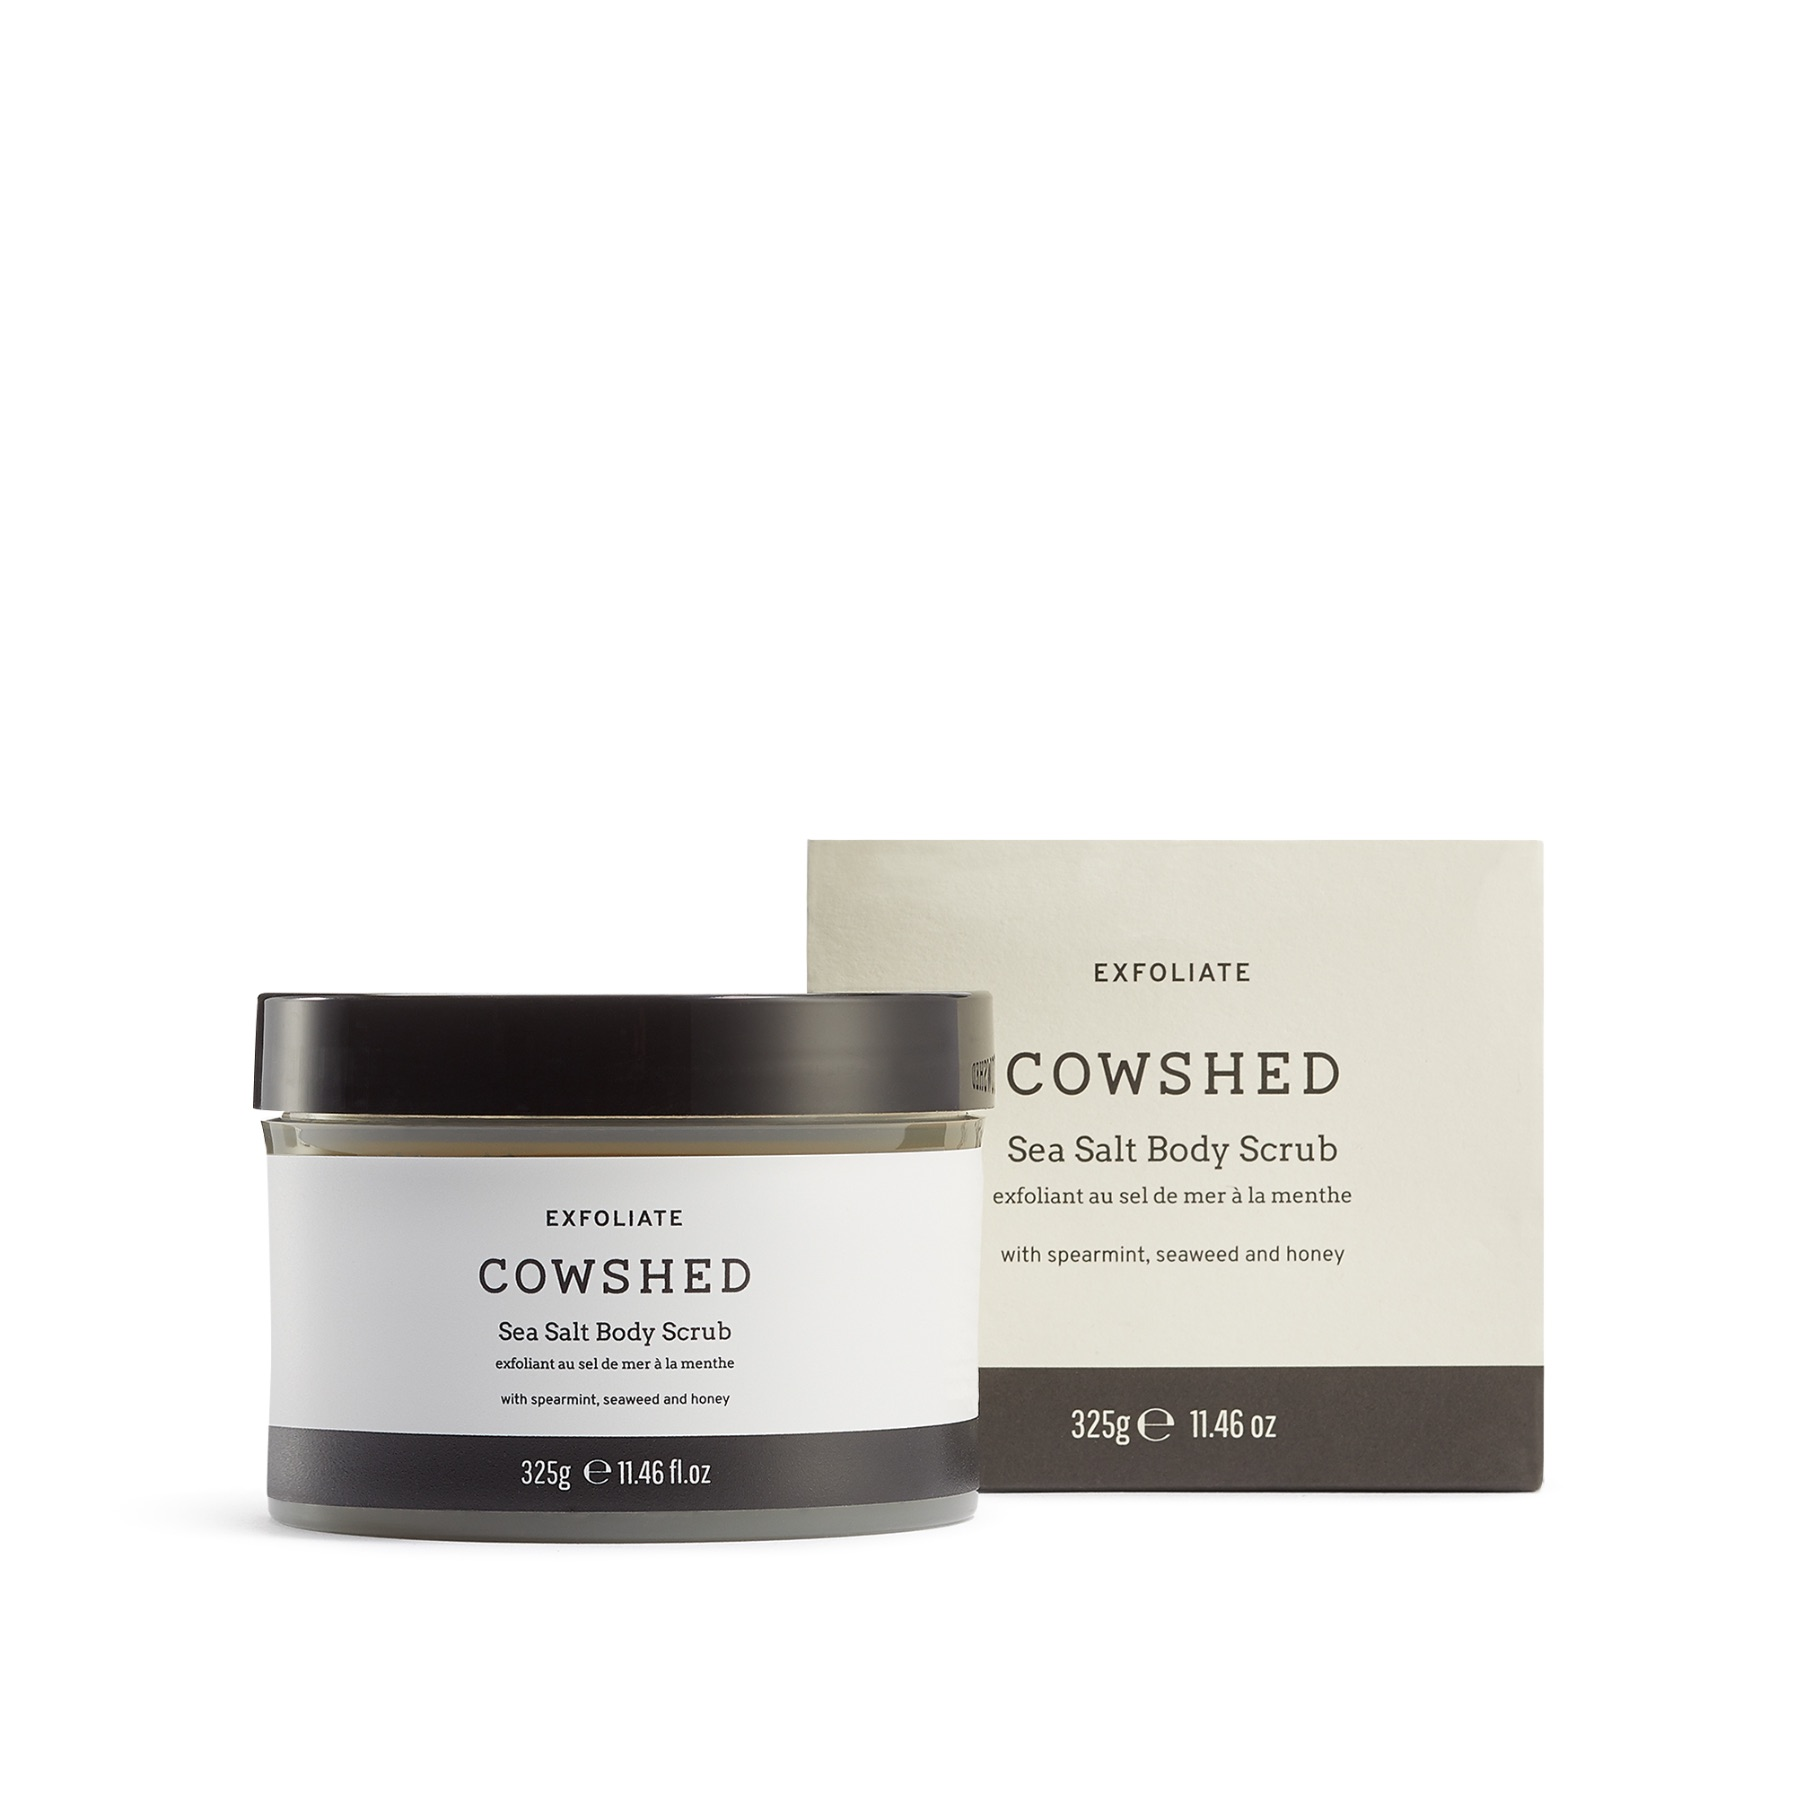 Cowshed EXFOLIATE Sea Salt Body Scrub 325g